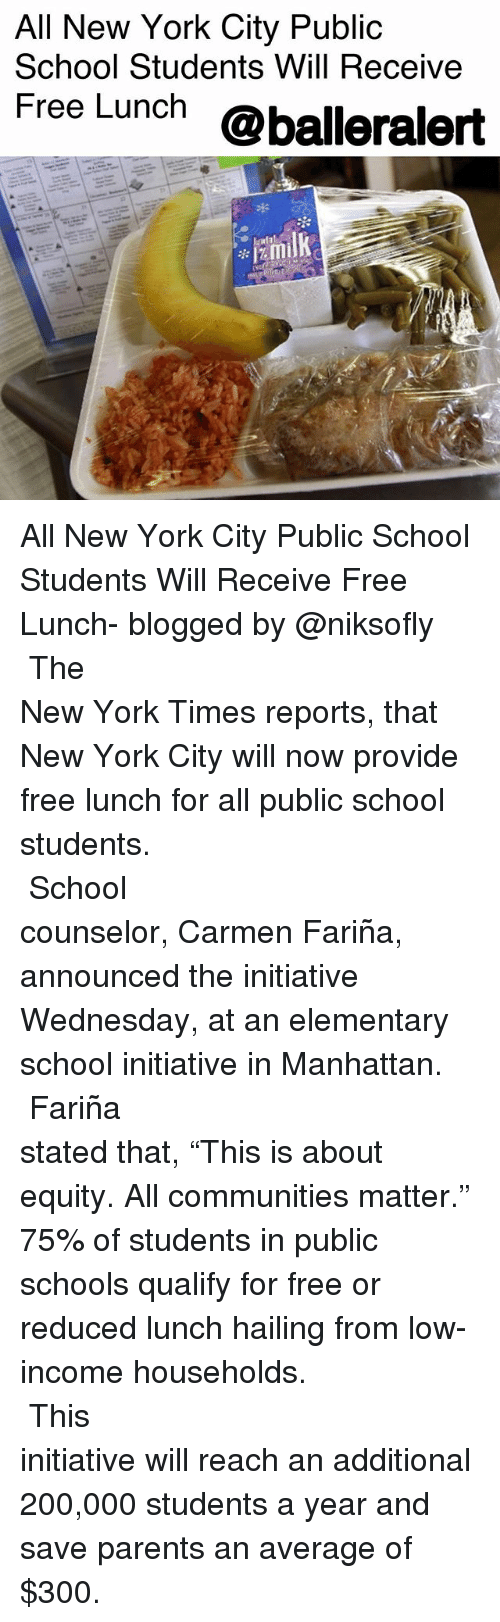 "equity: All New York City Public  School Students Will Receive  Free Lunch @balleralert All New York City Public School Students Will Receive Free Lunch- blogged by @niksofly ⠀⠀⠀⠀⠀⠀⠀⠀⠀⠀⠀⠀⠀⠀⠀⠀⠀⠀⠀⠀⠀⠀⠀⠀⠀⠀⠀⠀⠀⠀⠀⠀⠀⠀⠀⠀ The New York Times reports, that New York City will now provide free lunch for all public school students. ⠀⠀⠀⠀⠀⠀⠀⠀⠀⠀⠀⠀⠀⠀⠀⠀⠀⠀⠀⠀⠀⠀⠀⠀⠀⠀⠀⠀⠀⠀⠀⠀⠀⠀⠀⠀ School counselor, Carmen Fariña, announced the initiative Wednesday, at an elementary school initiative in Manhattan. ⠀⠀⠀⠀⠀⠀⠀⠀⠀⠀⠀⠀⠀⠀⠀⠀⠀⠀⠀⠀⠀⠀⠀⠀⠀⠀⠀⠀⠀⠀⠀⠀⠀⠀⠀⠀ Fariña stated that, ""This is about equity. All communities matter."" 75% of students in public schools qualify for free or reduced lunch hailing from low-income households. ⠀⠀⠀⠀⠀⠀⠀⠀⠀⠀⠀⠀⠀⠀⠀⠀⠀⠀⠀⠀⠀⠀⠀⠀⠀⠀⠀⠀⠀⠀⠀⠀⠀⠀⠀⠀ This initiative will reach an additional 200,000 students a year and save parents an average of $300."